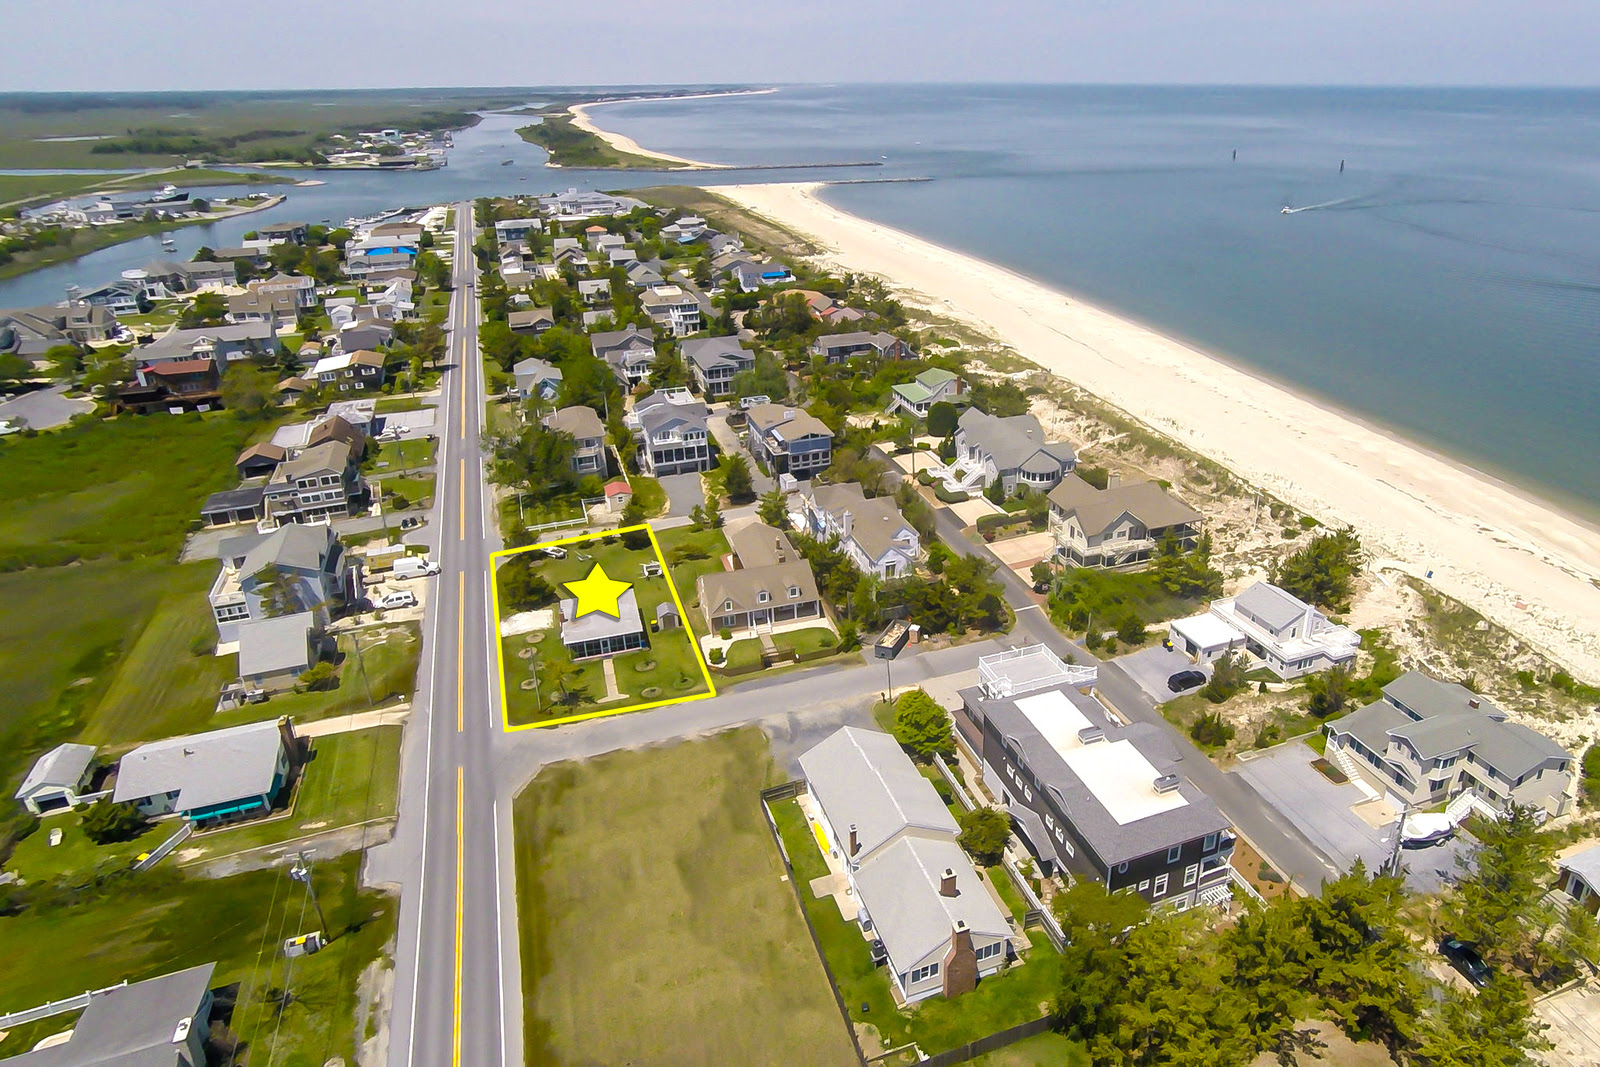 image Hot new prices on beach real estate - Lee Ann Group